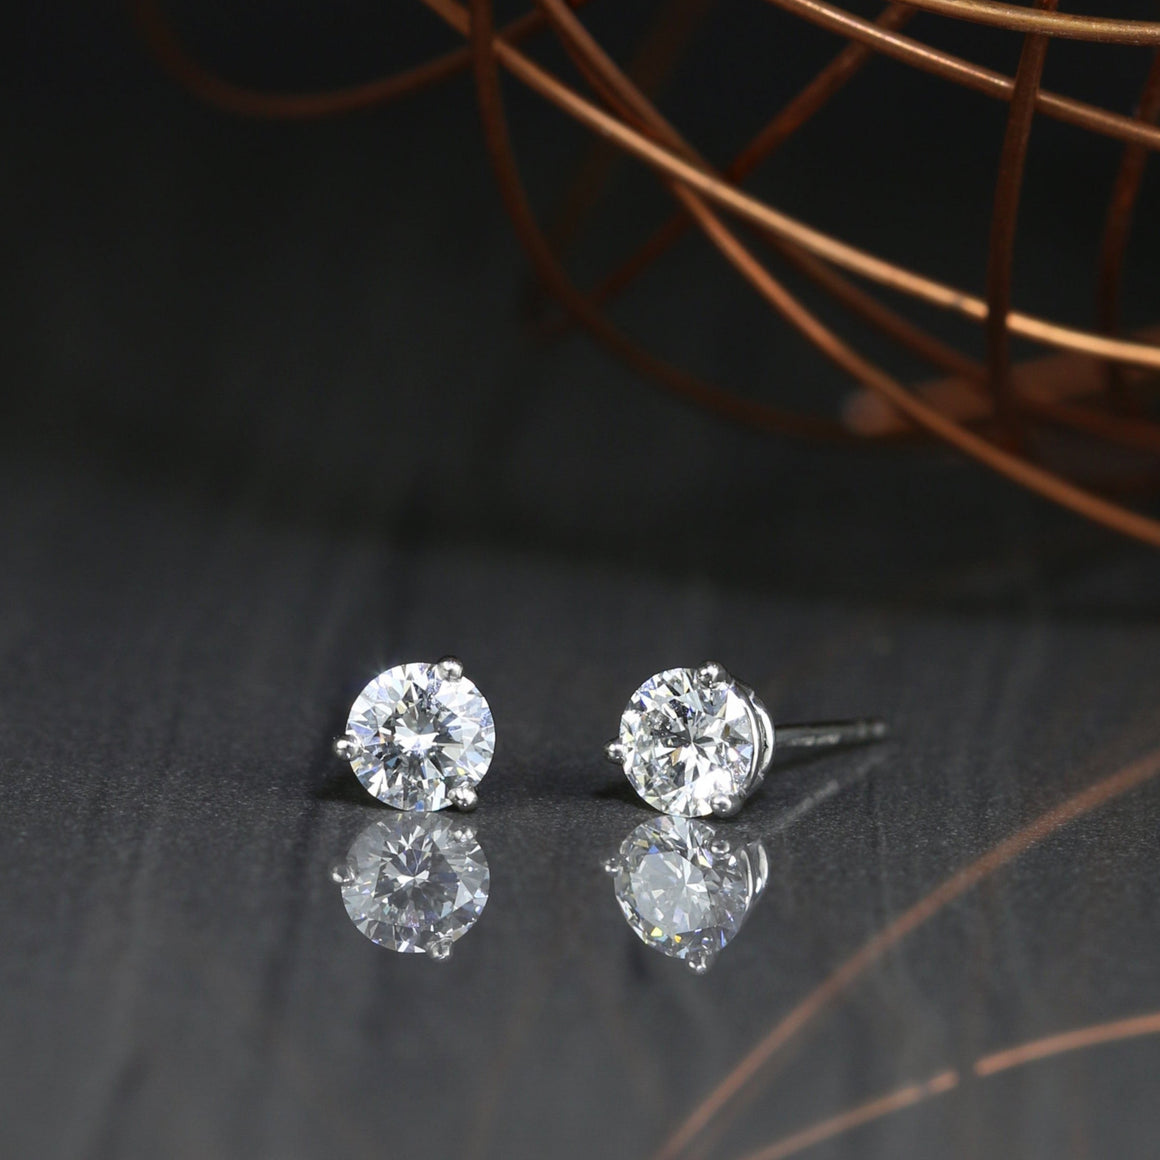 Diamond Stud Earrings in Platinum - 0.75ctw